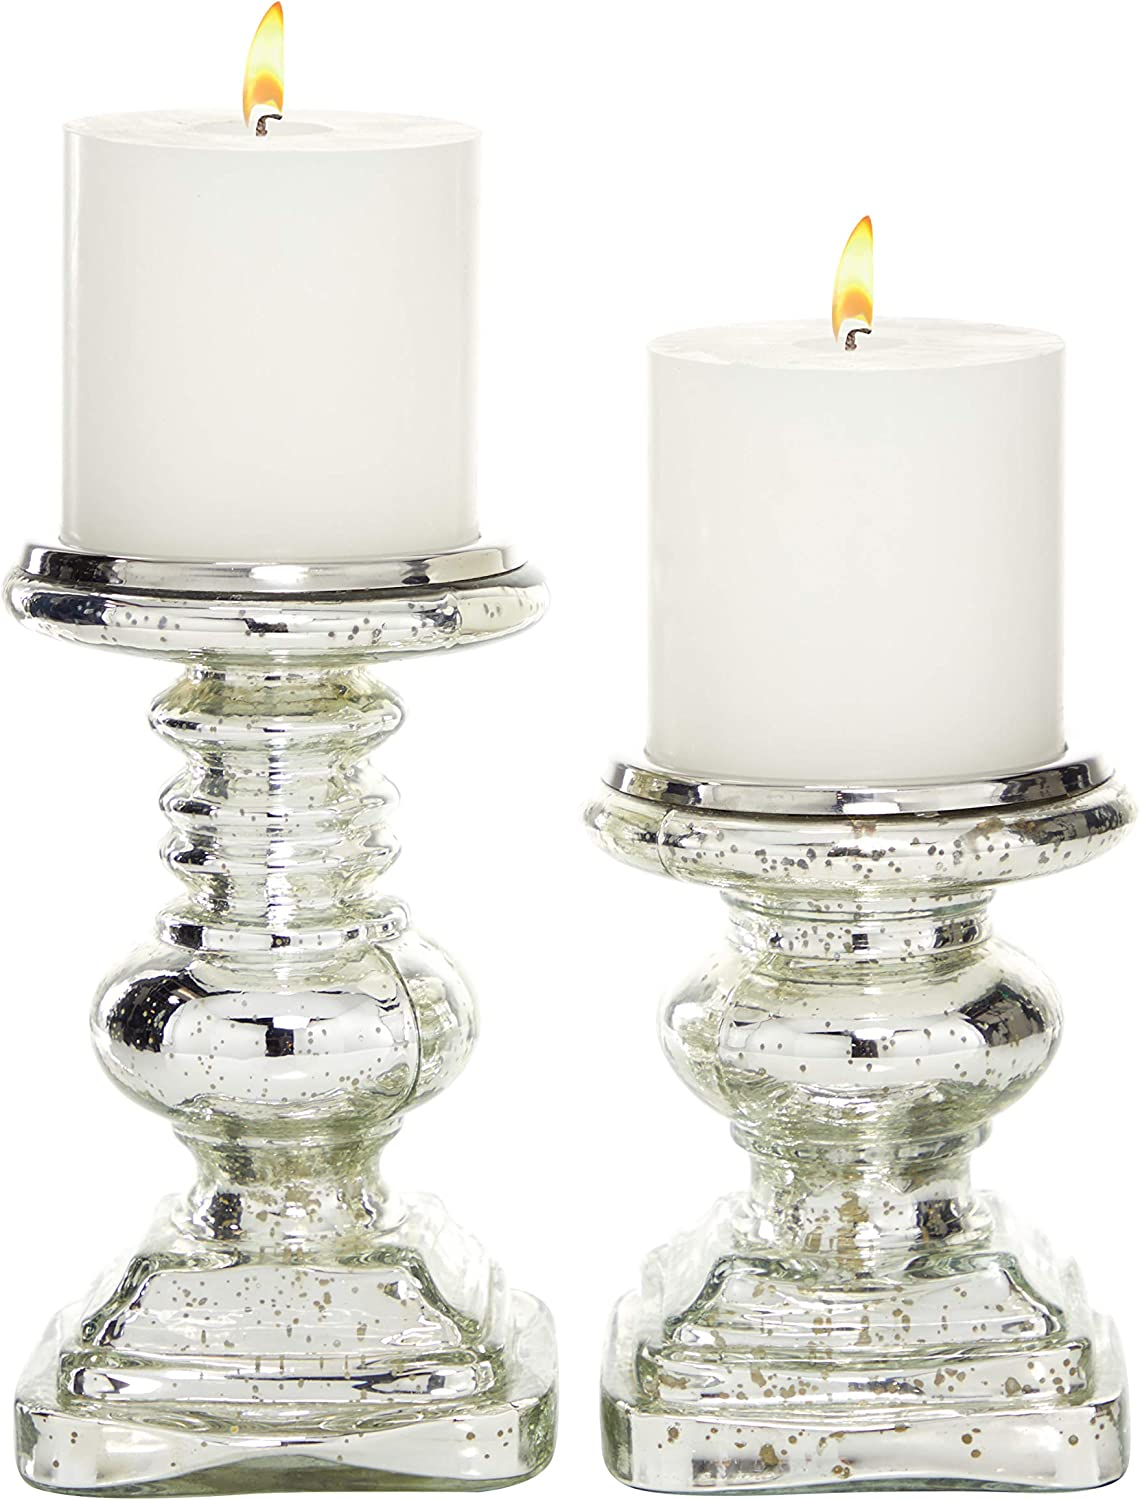 7 Set of 2 Traditional Silver Mercury Glass Candle Holders 9